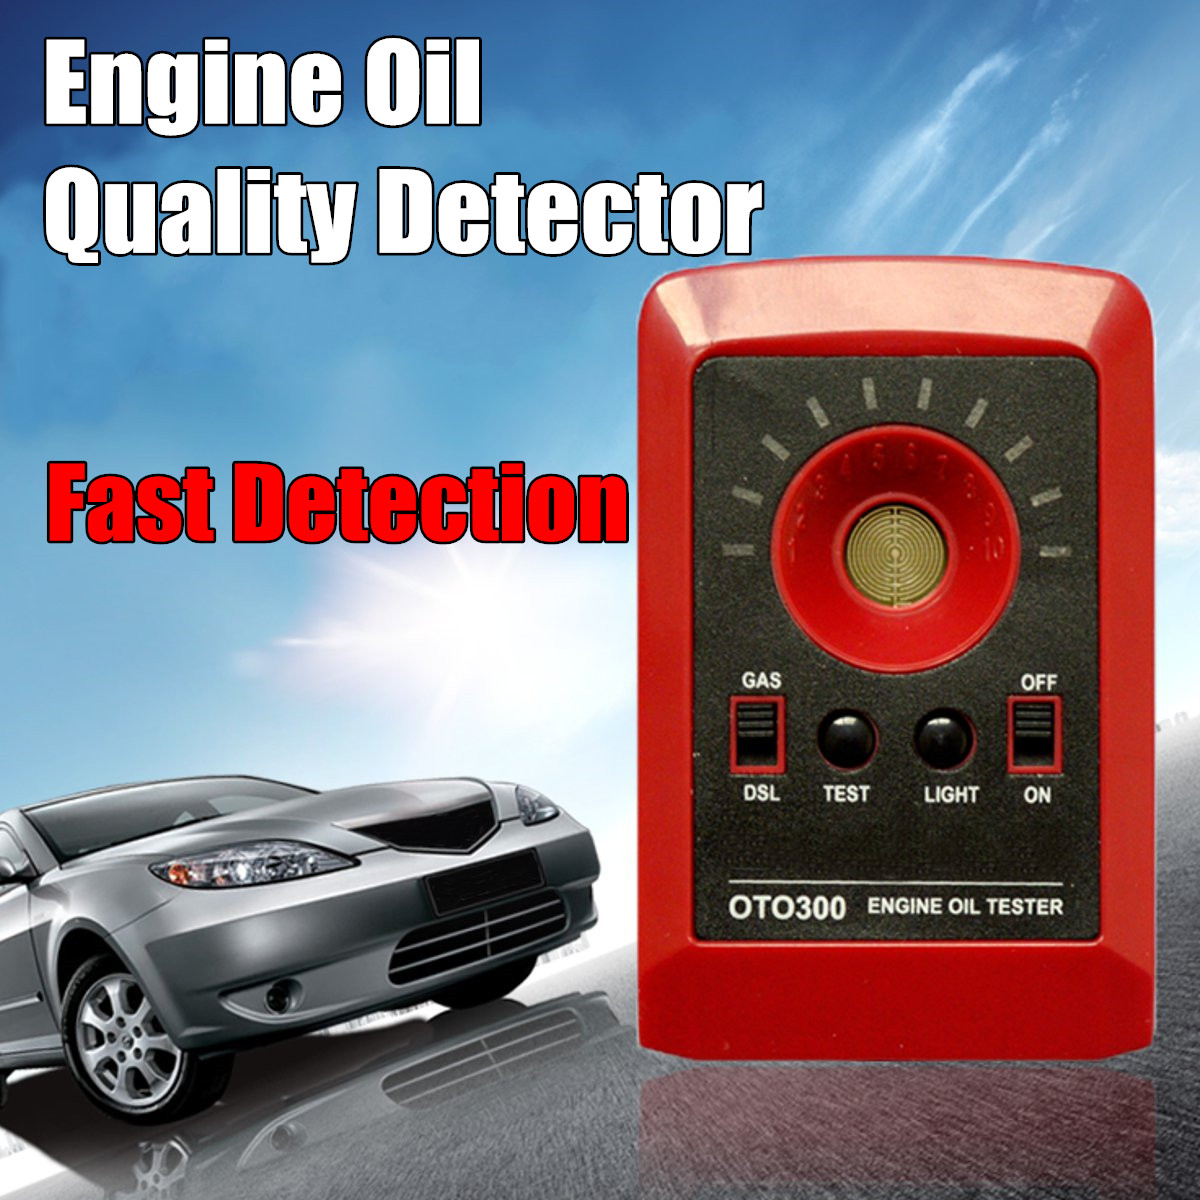 Digital Tester Motor Engine Oil Quality Detector Gas Diesel Fluid Analyzer